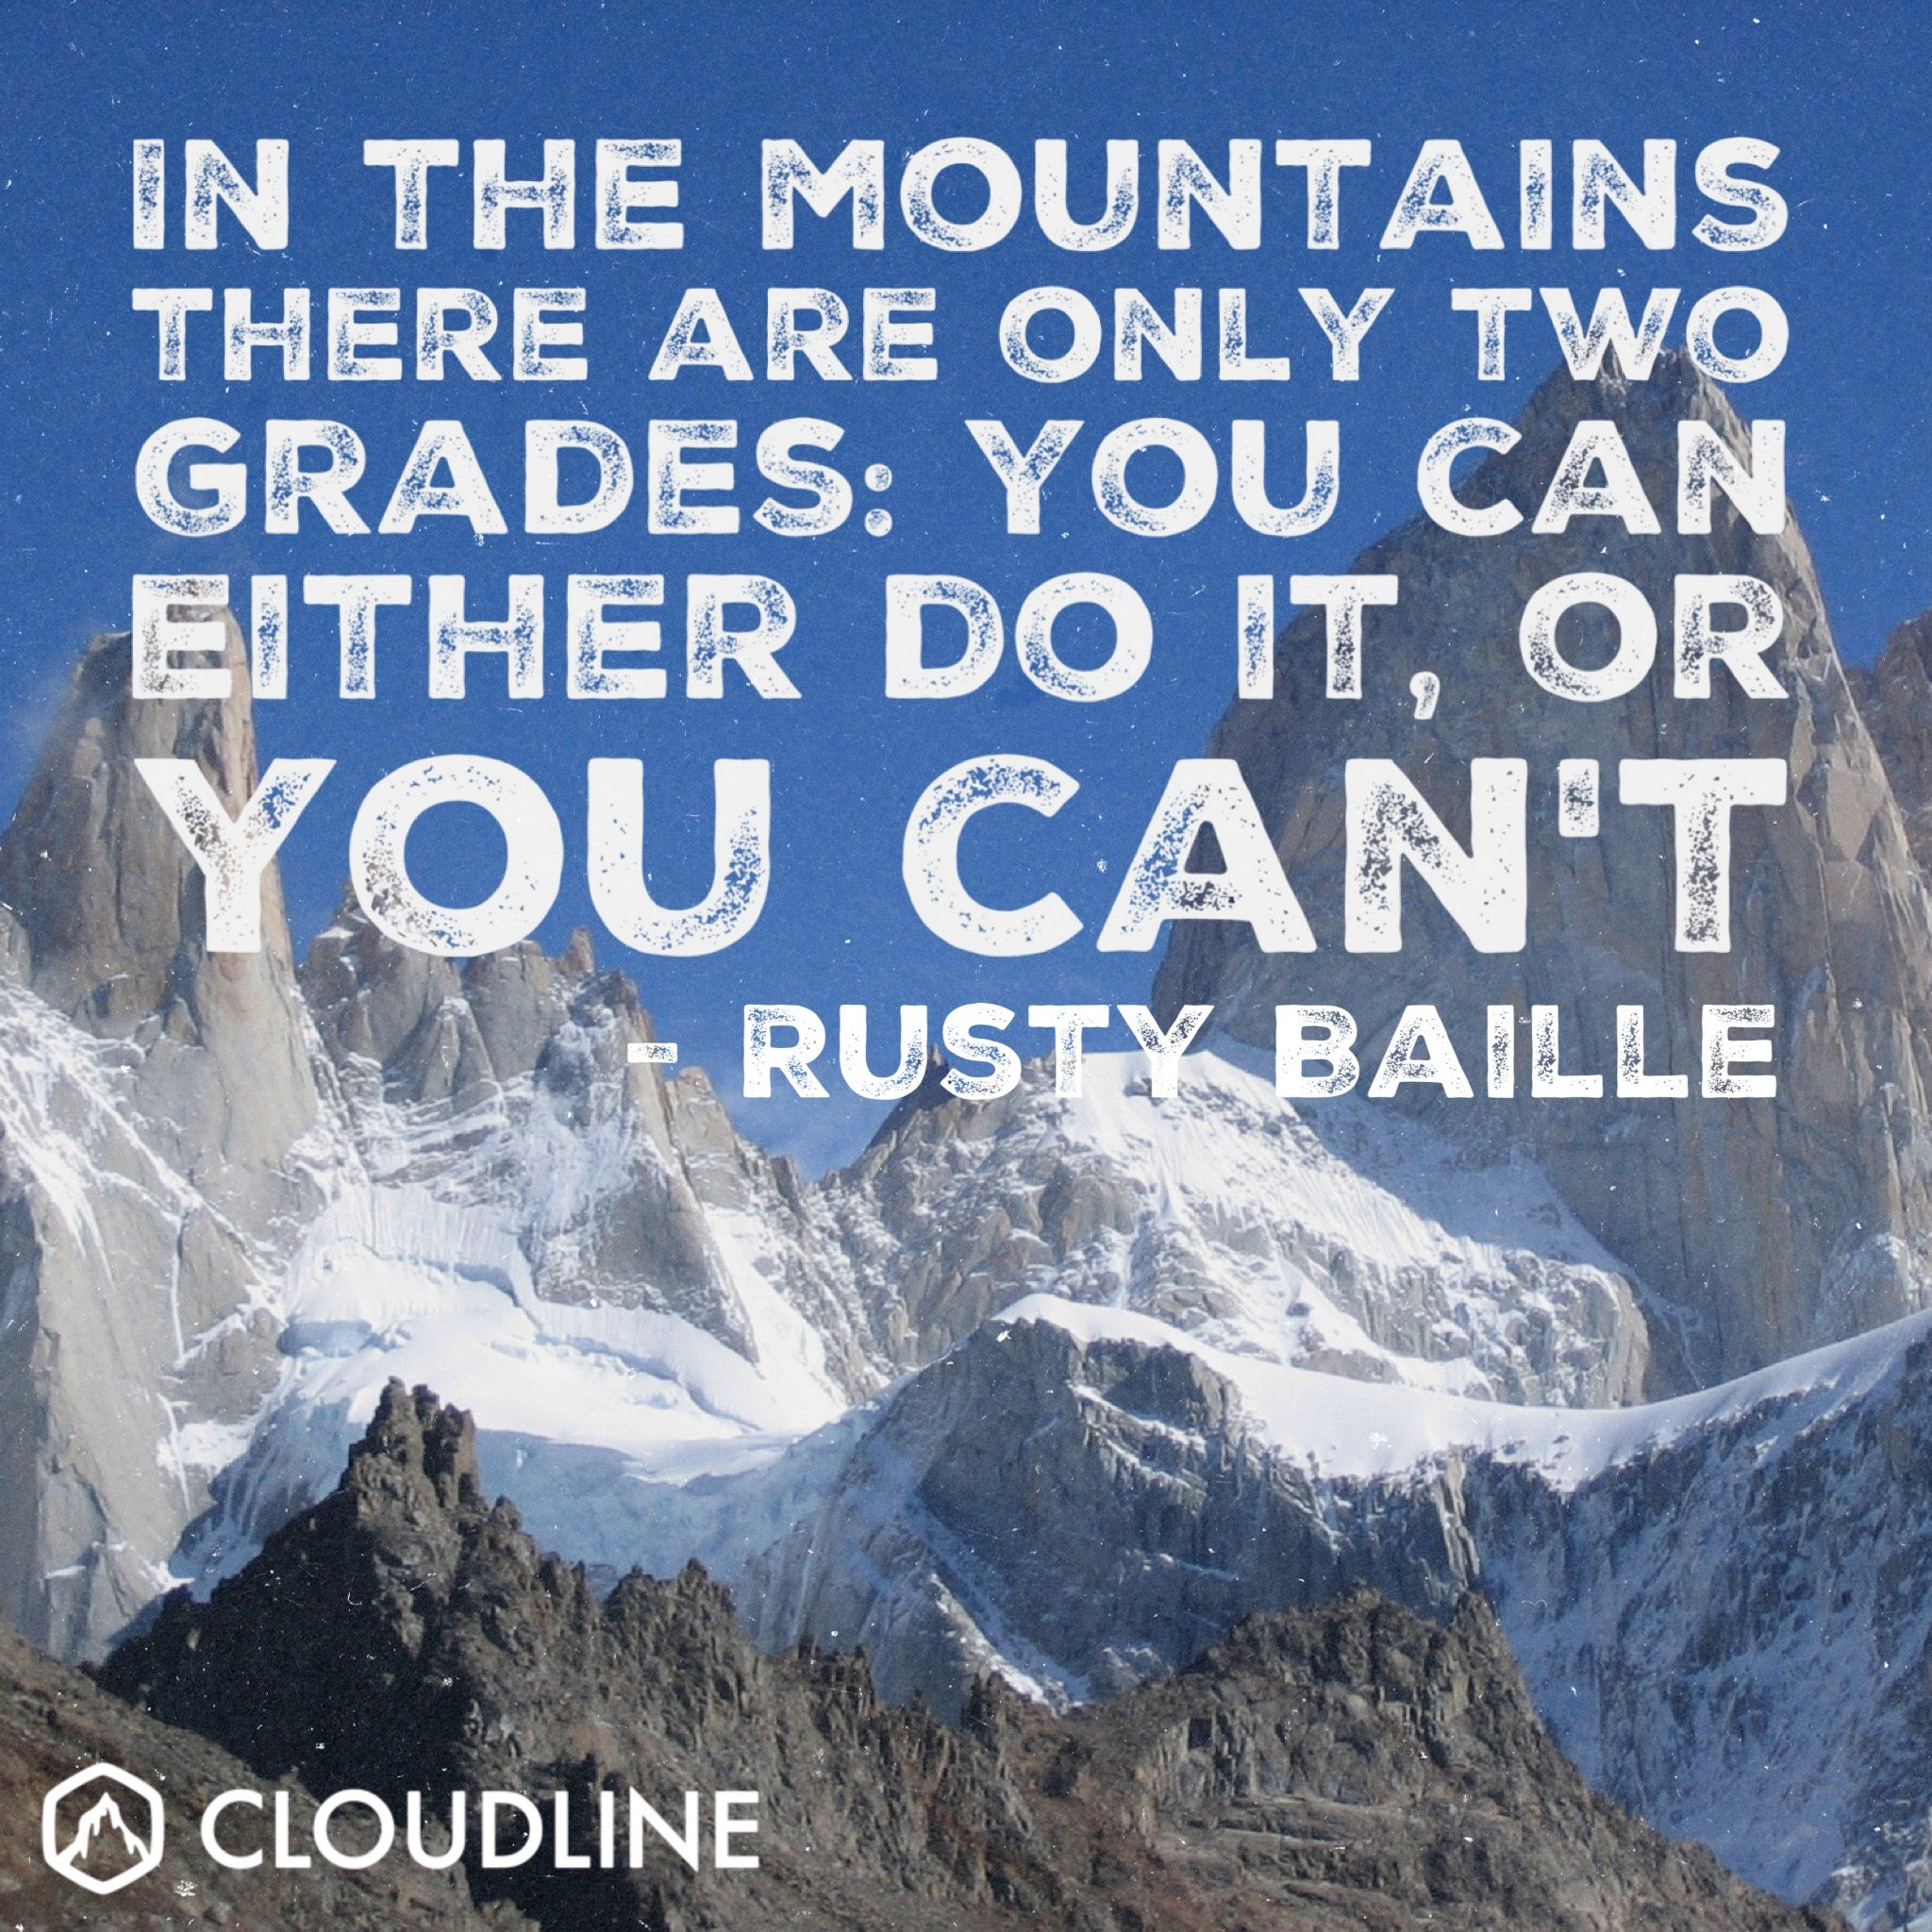 Get Inspired to Hike More with These Outdoor Quotes - Baille